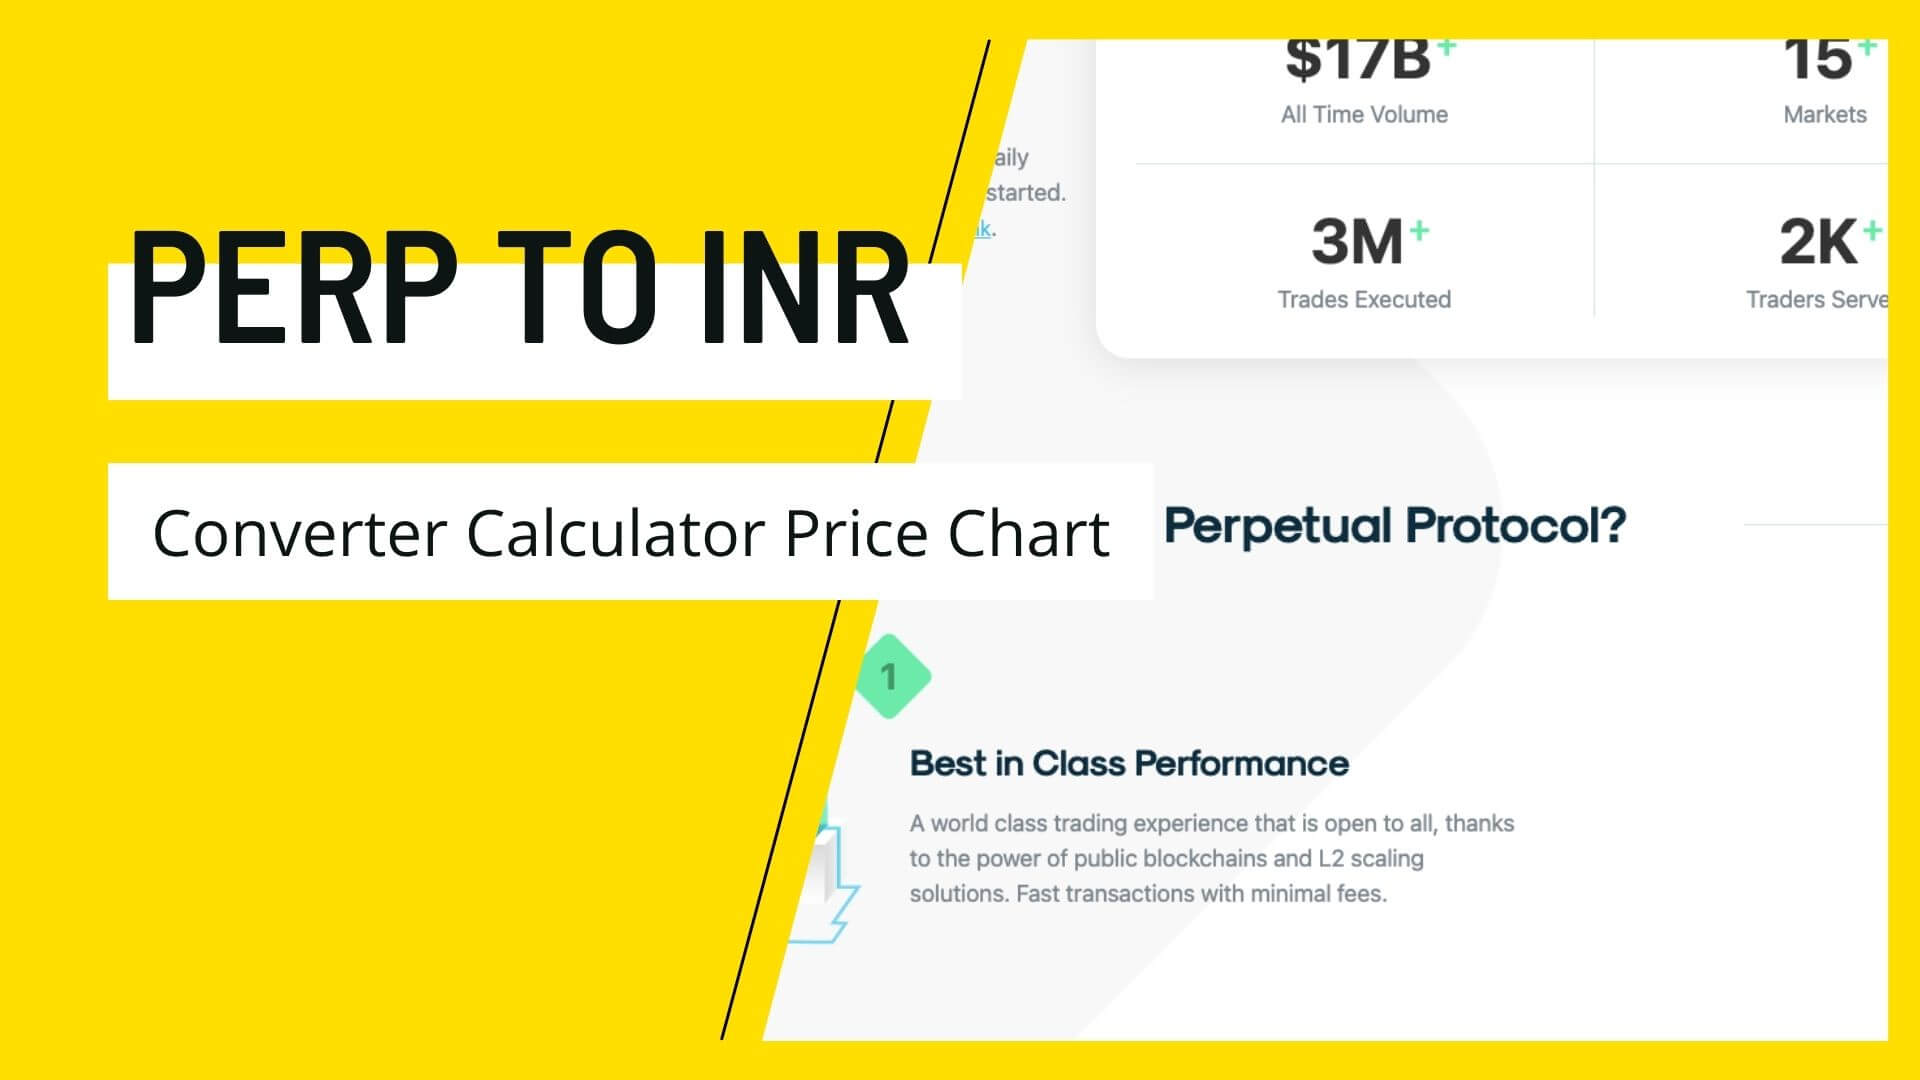 Perpetual Protocol PERP to INR Price Converter Calculator Chart